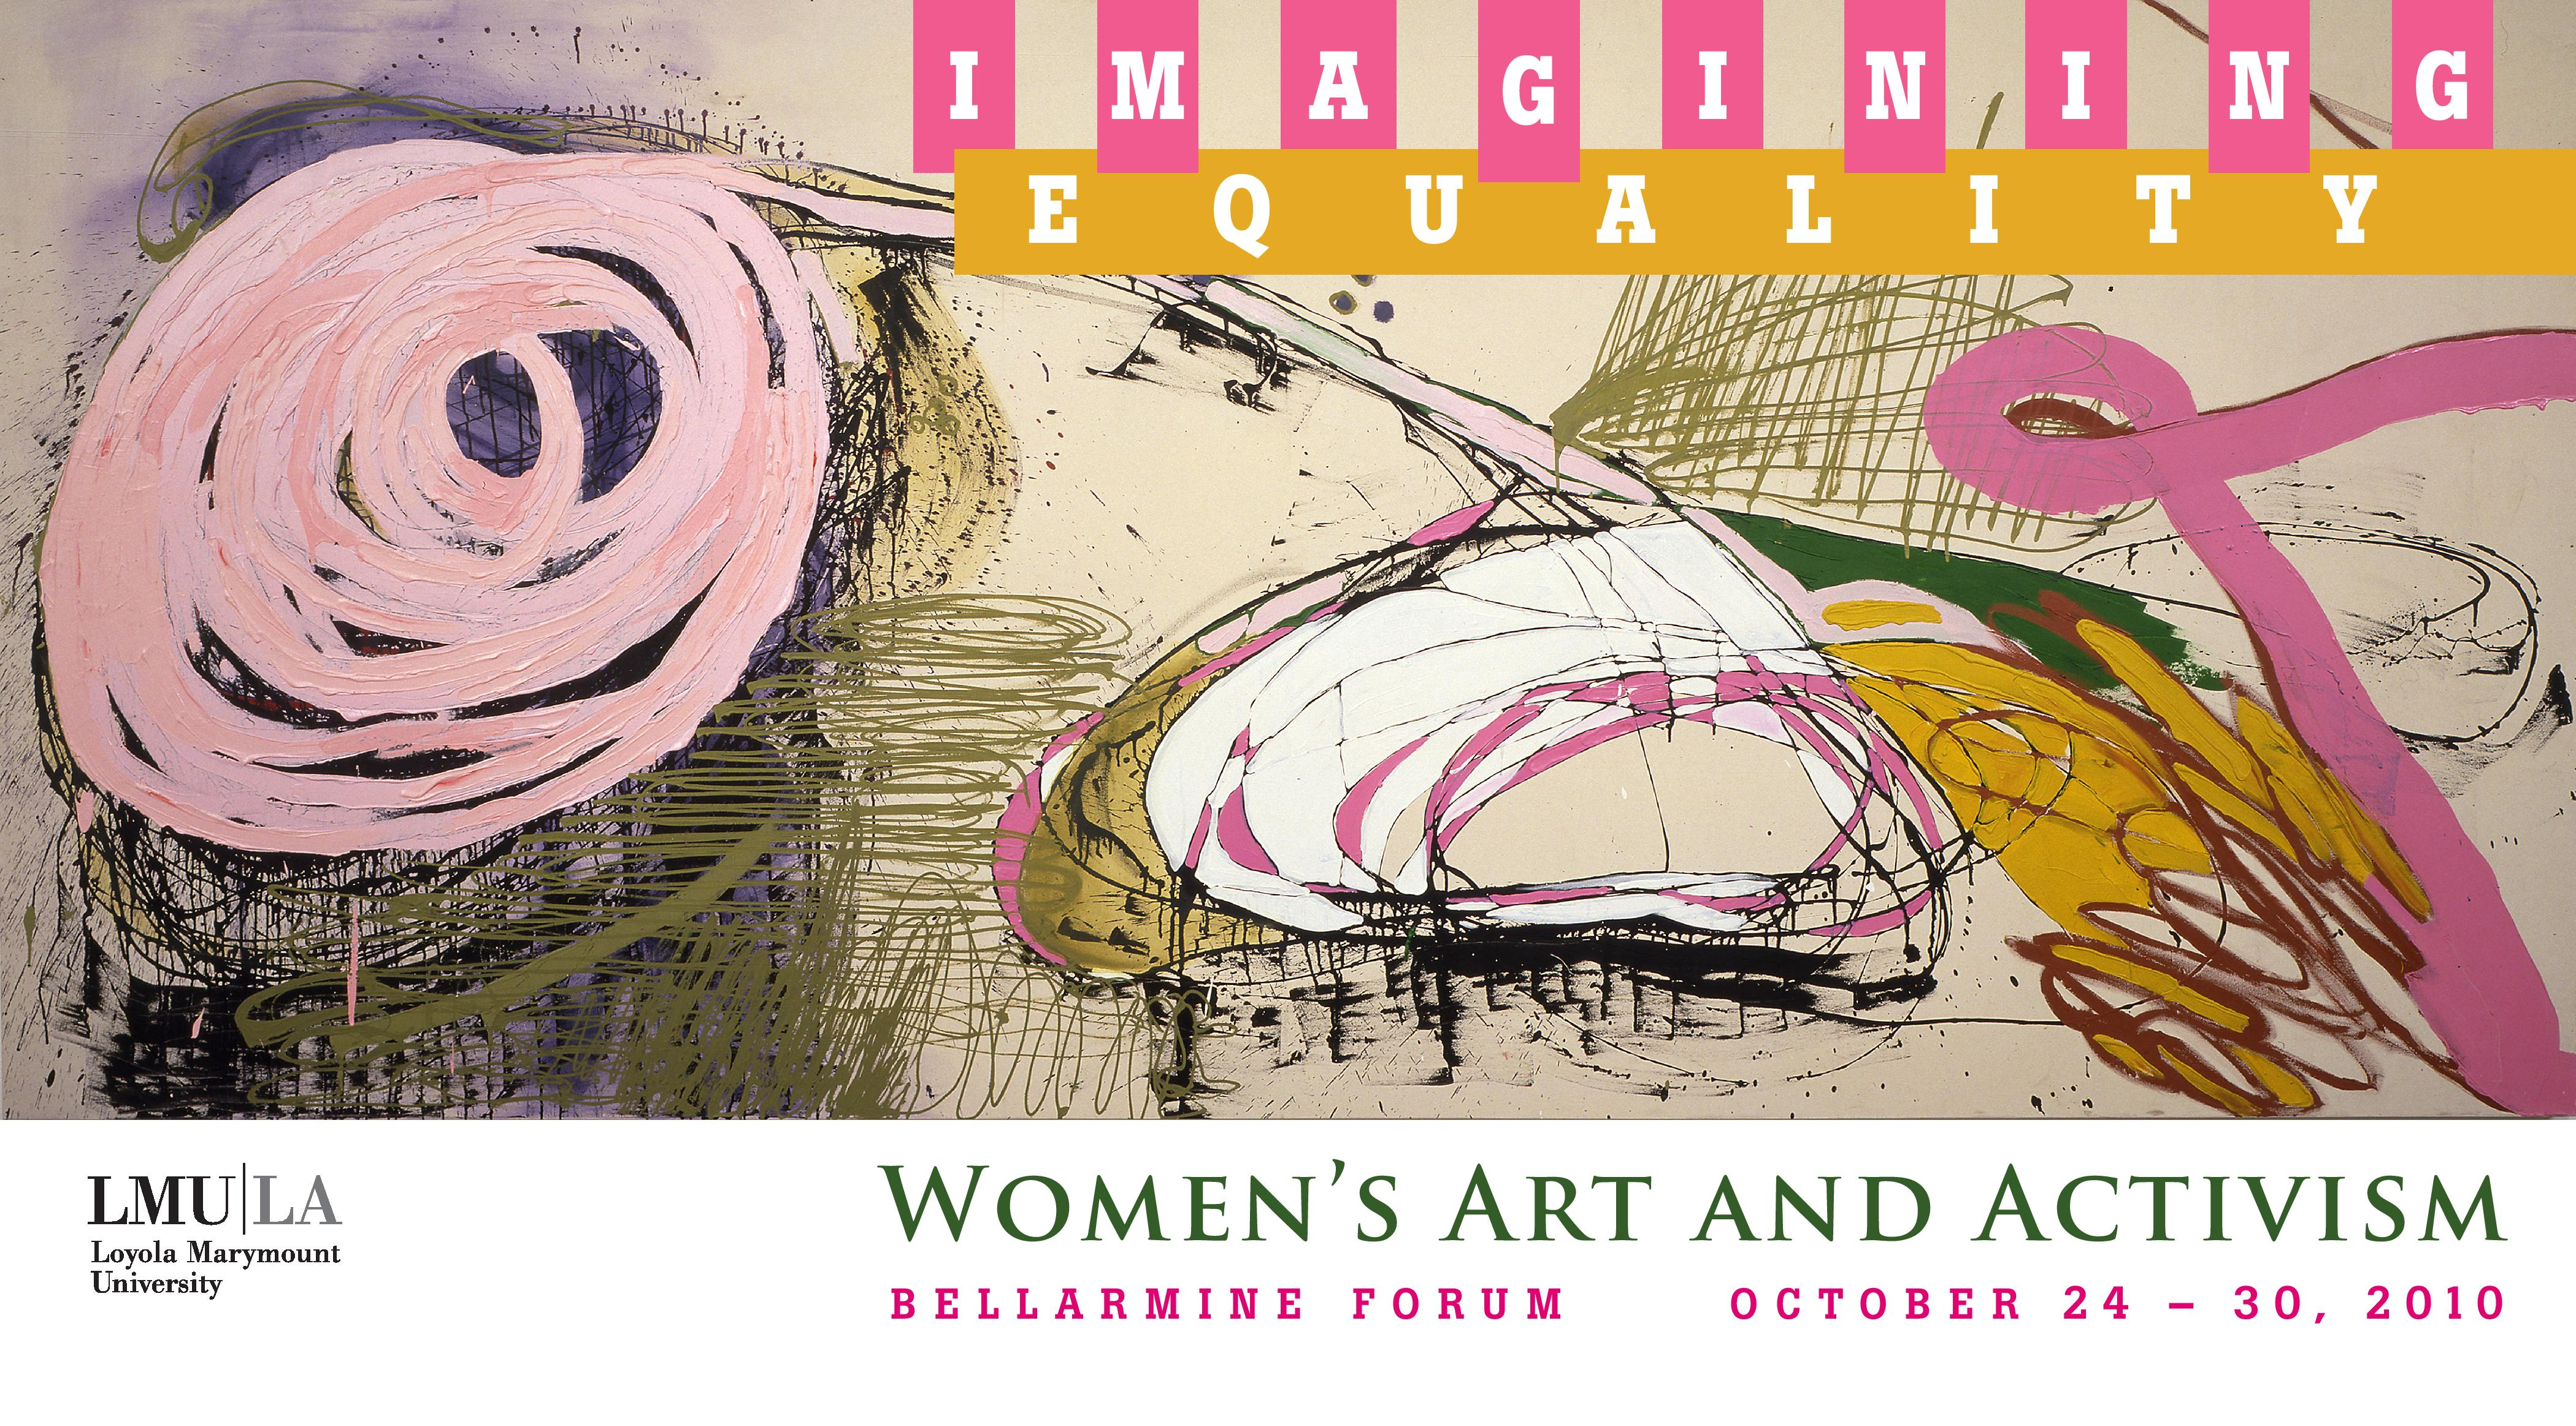 2010: Imagining Equality: Women's Art and Activism